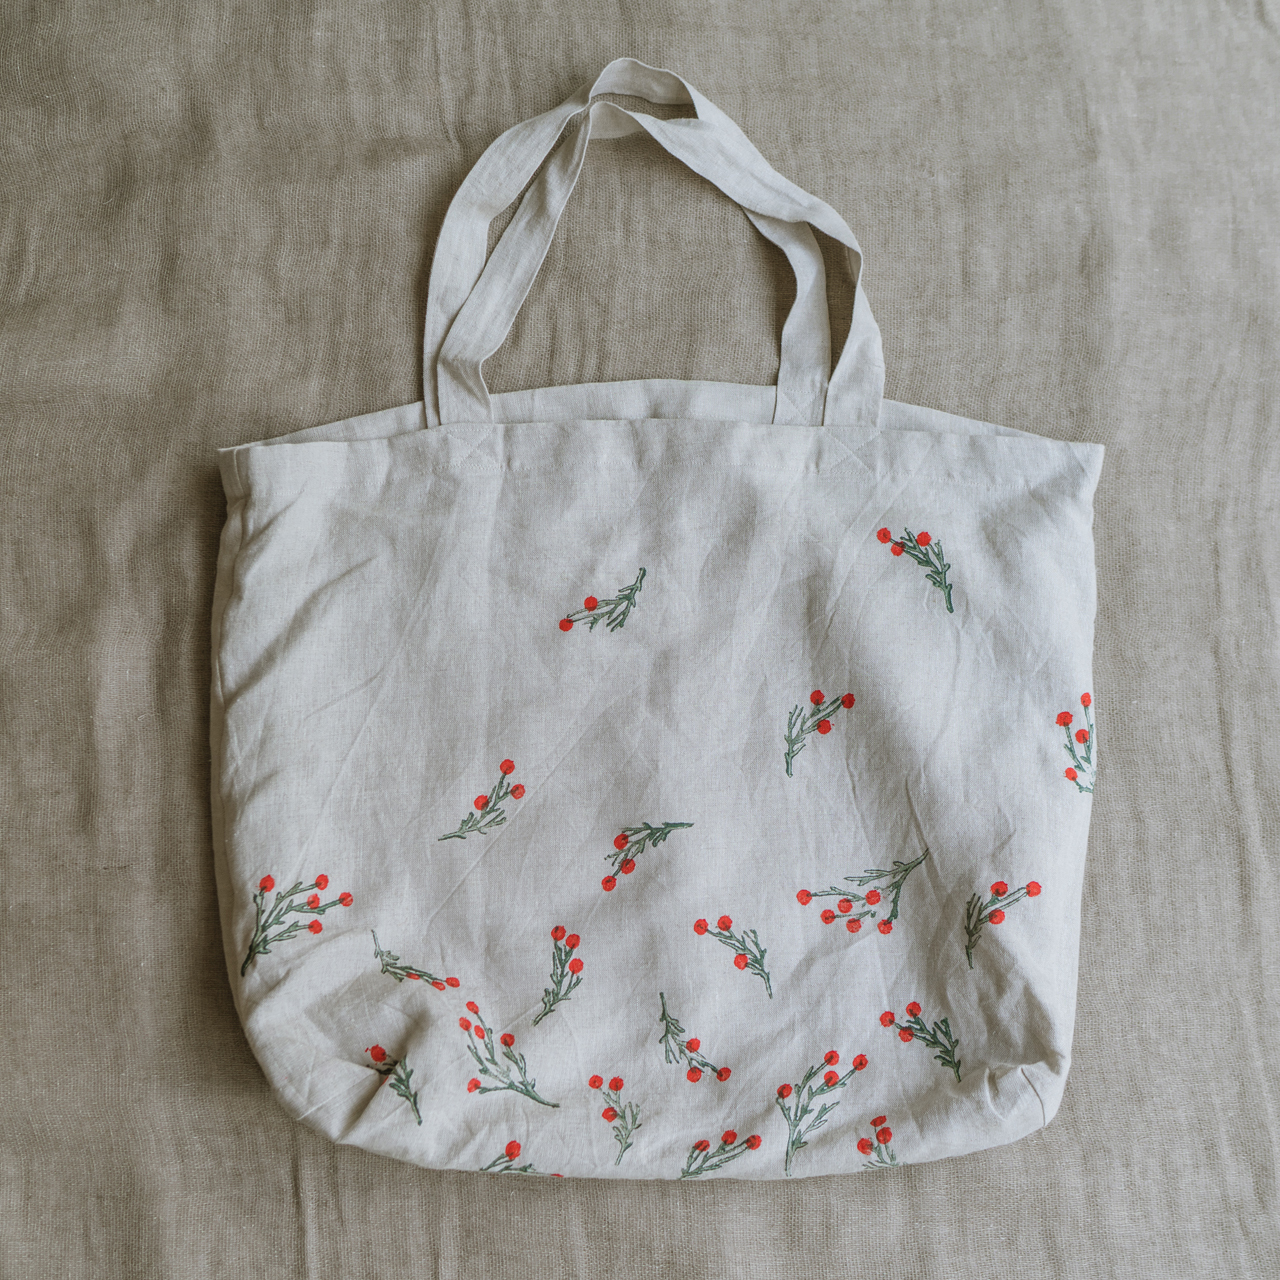 Large linen tote bag butcher's broom ラージリネントートバッグ ブッチャーズブルーム